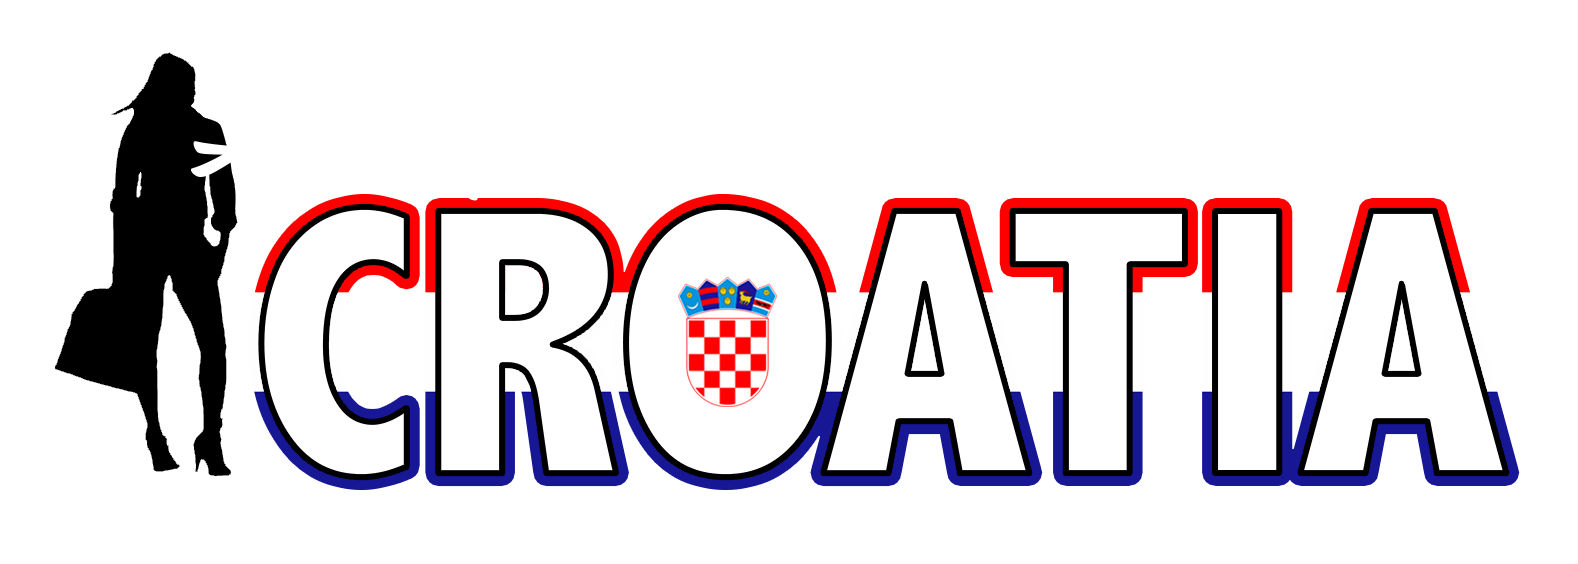 Ashley Colburn's Croatia